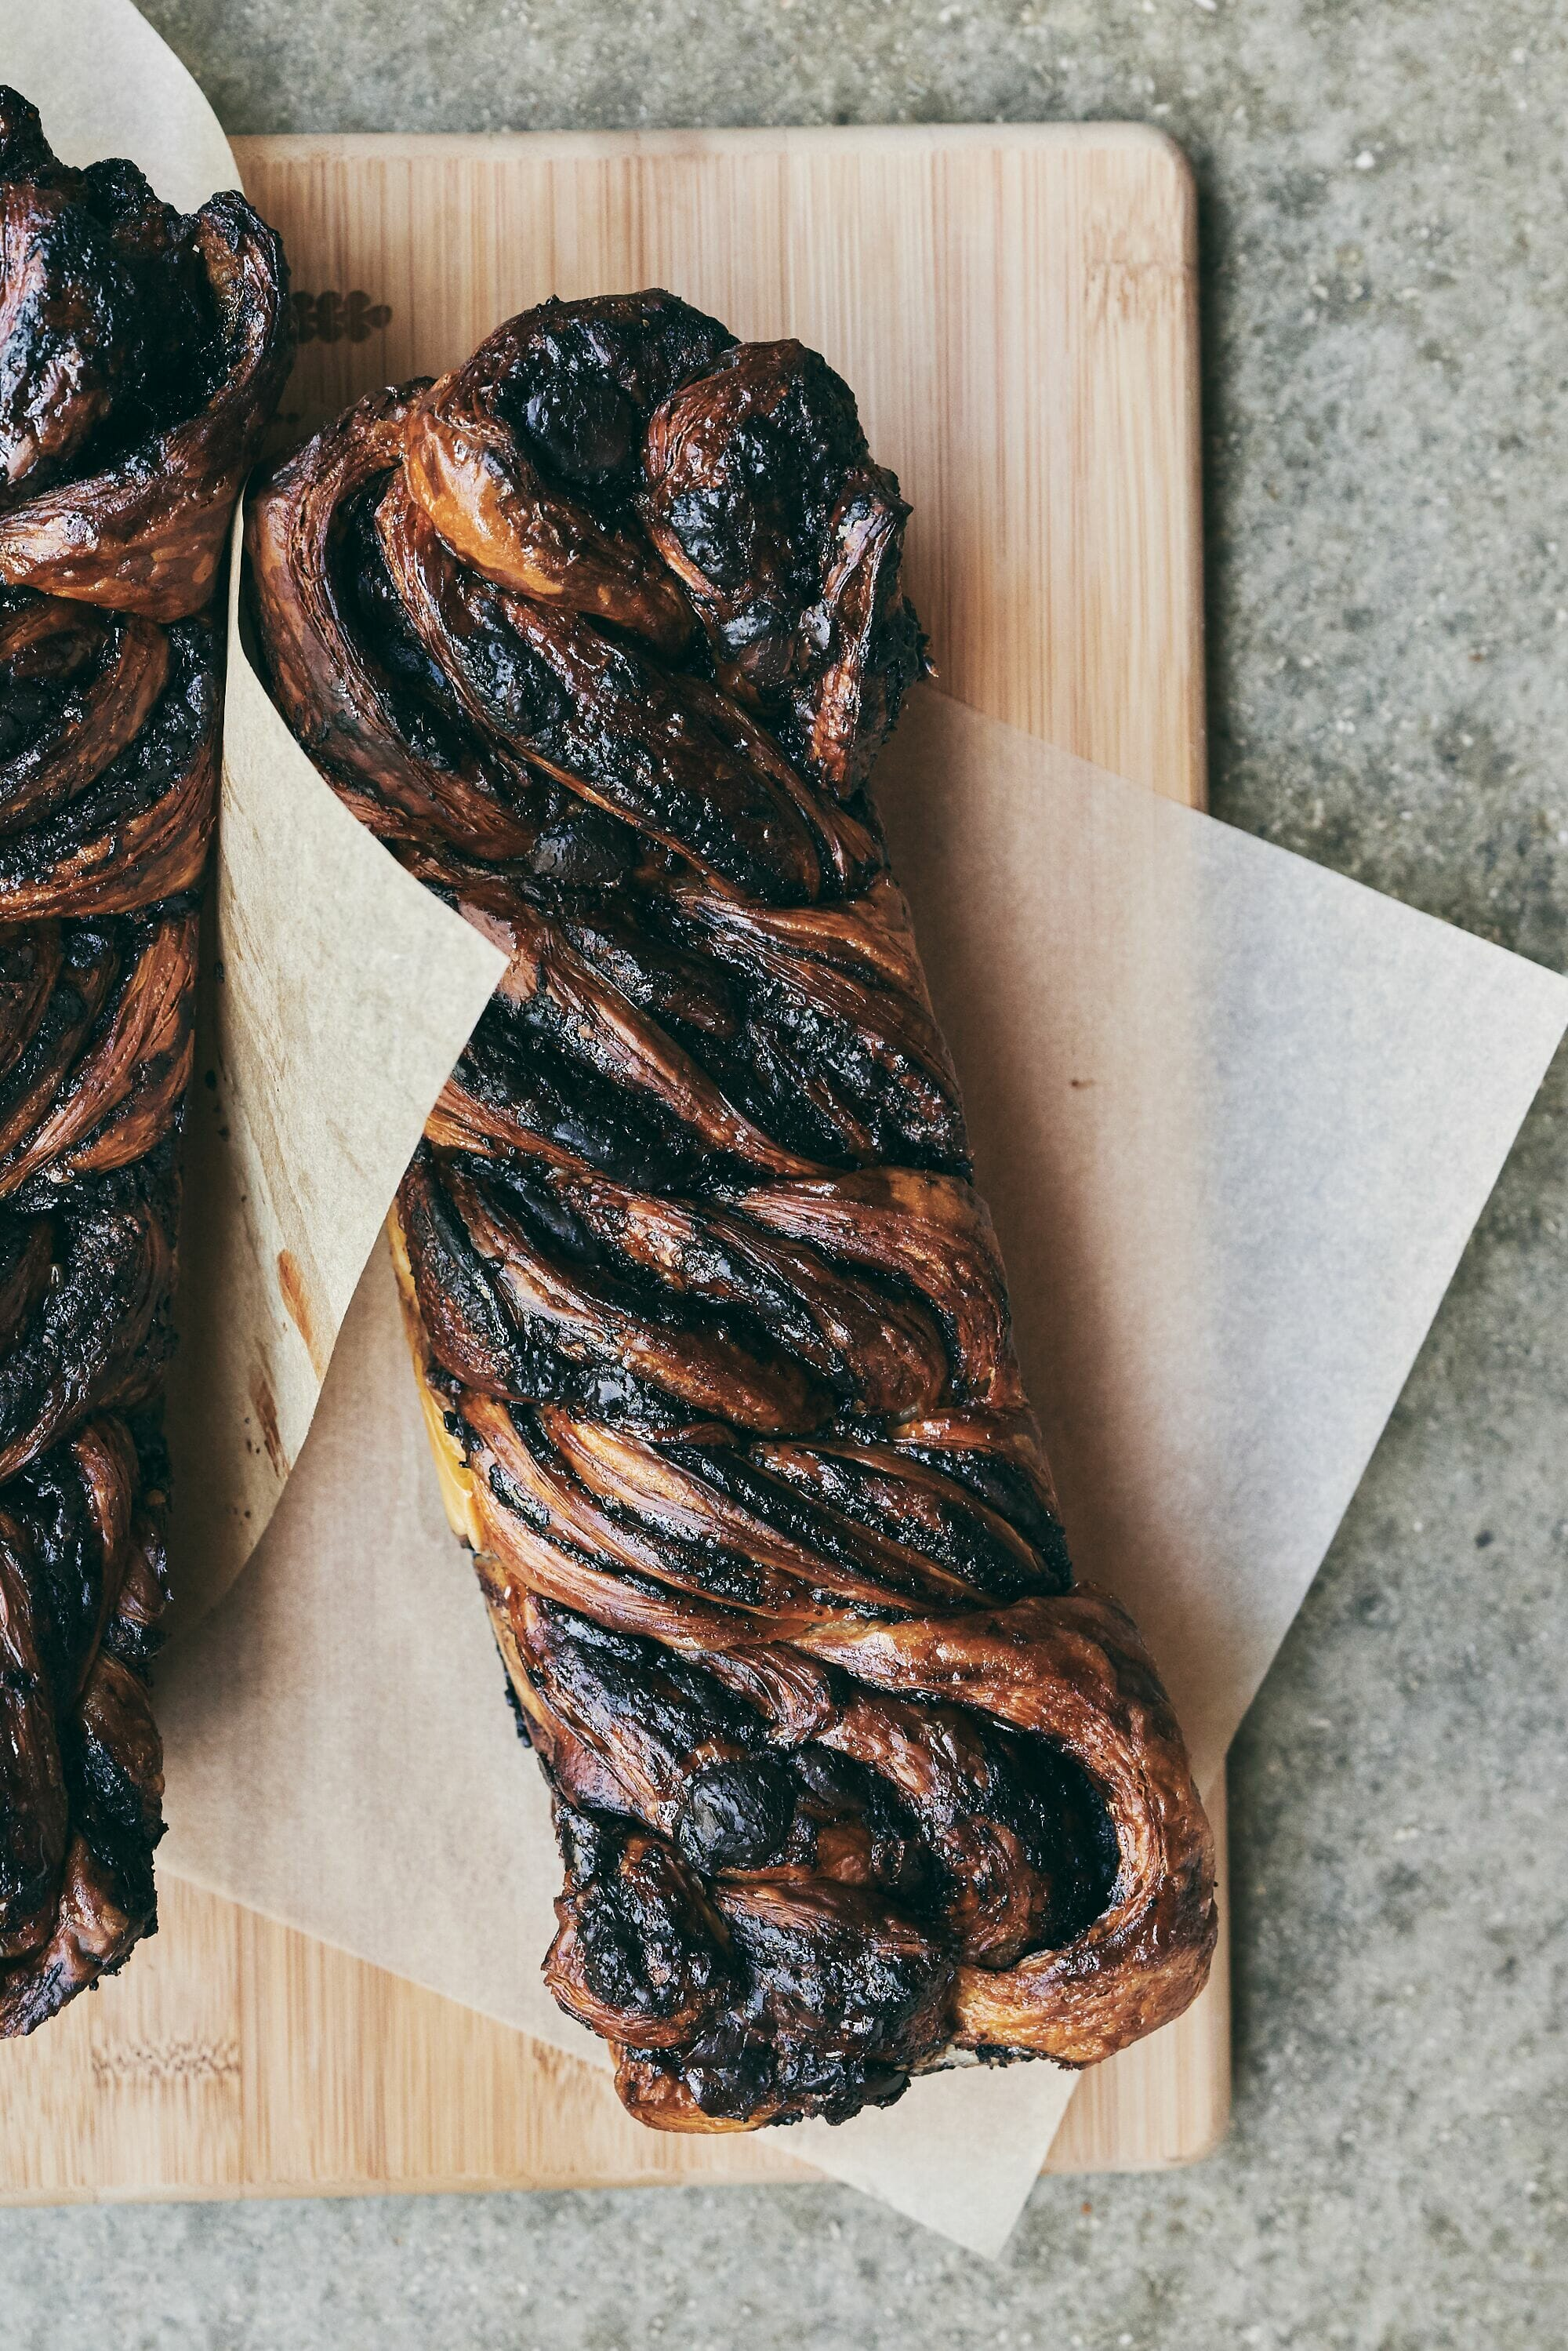 chocolate babka loaves from lehamim bakery